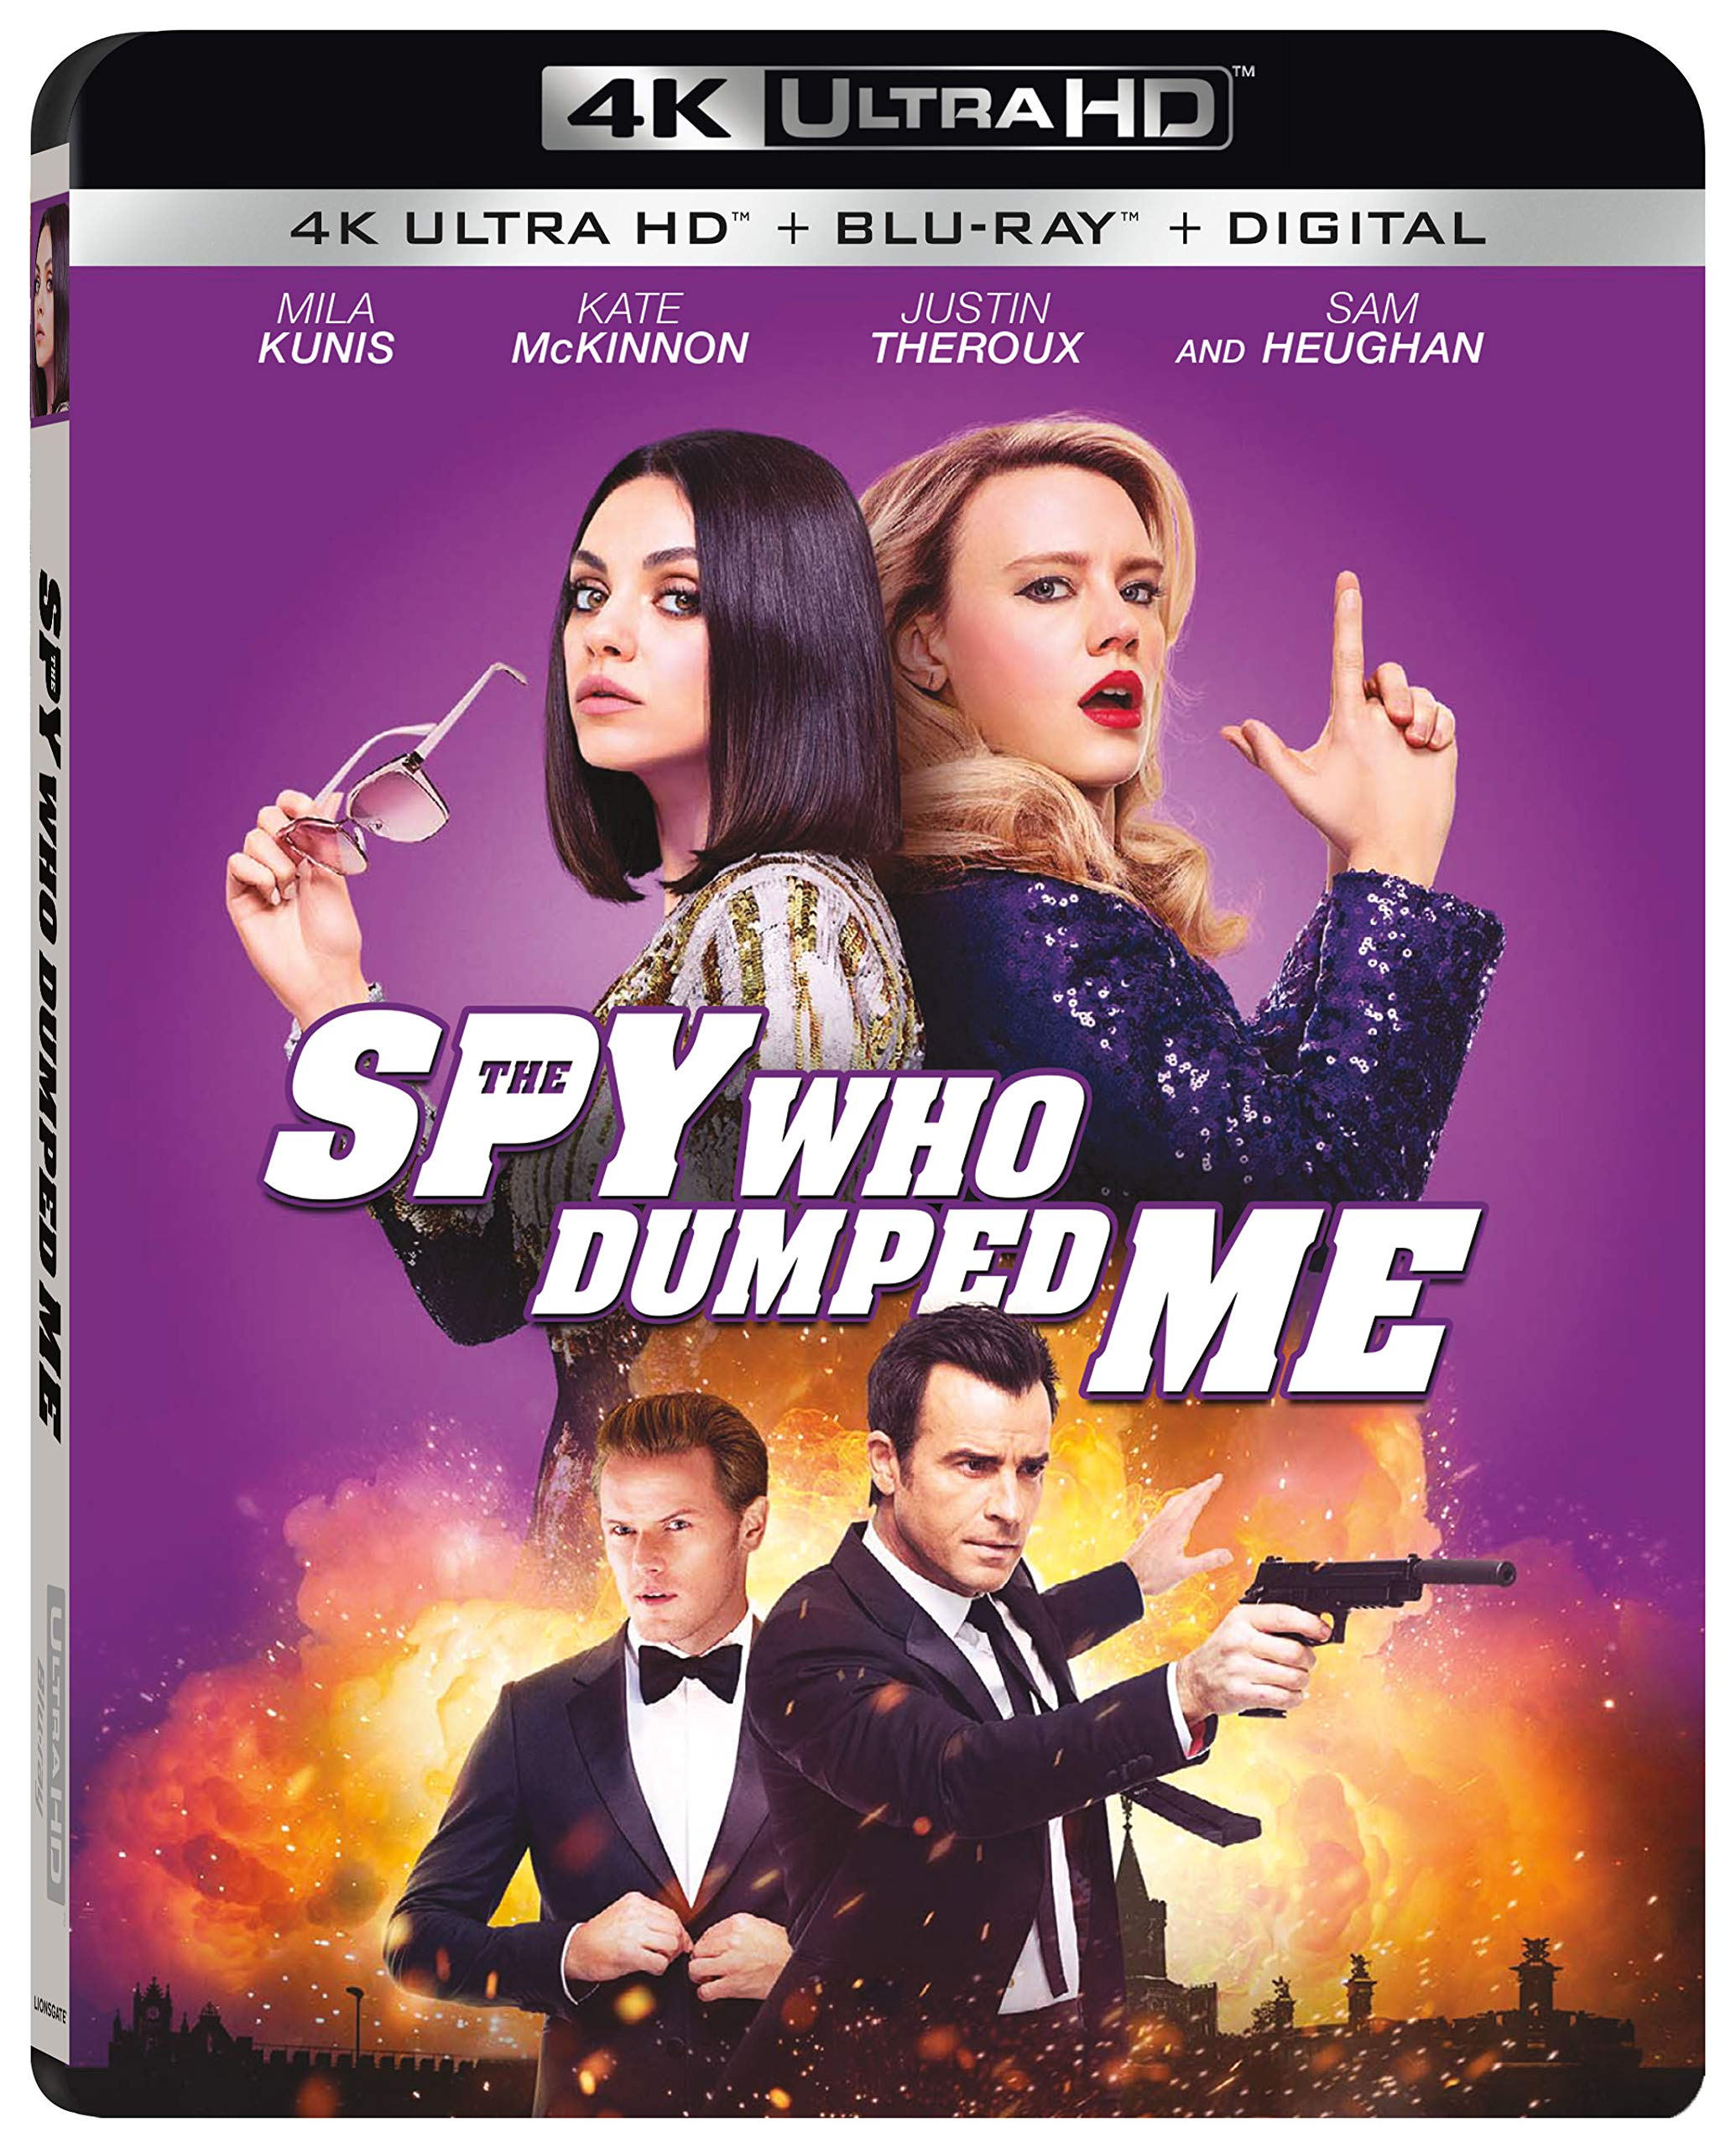 4K Blu-ray : The Spy Who Dumped Me (With Blu-ray, 4K Mastering, Digital Copy, Subtitled, AC-3)